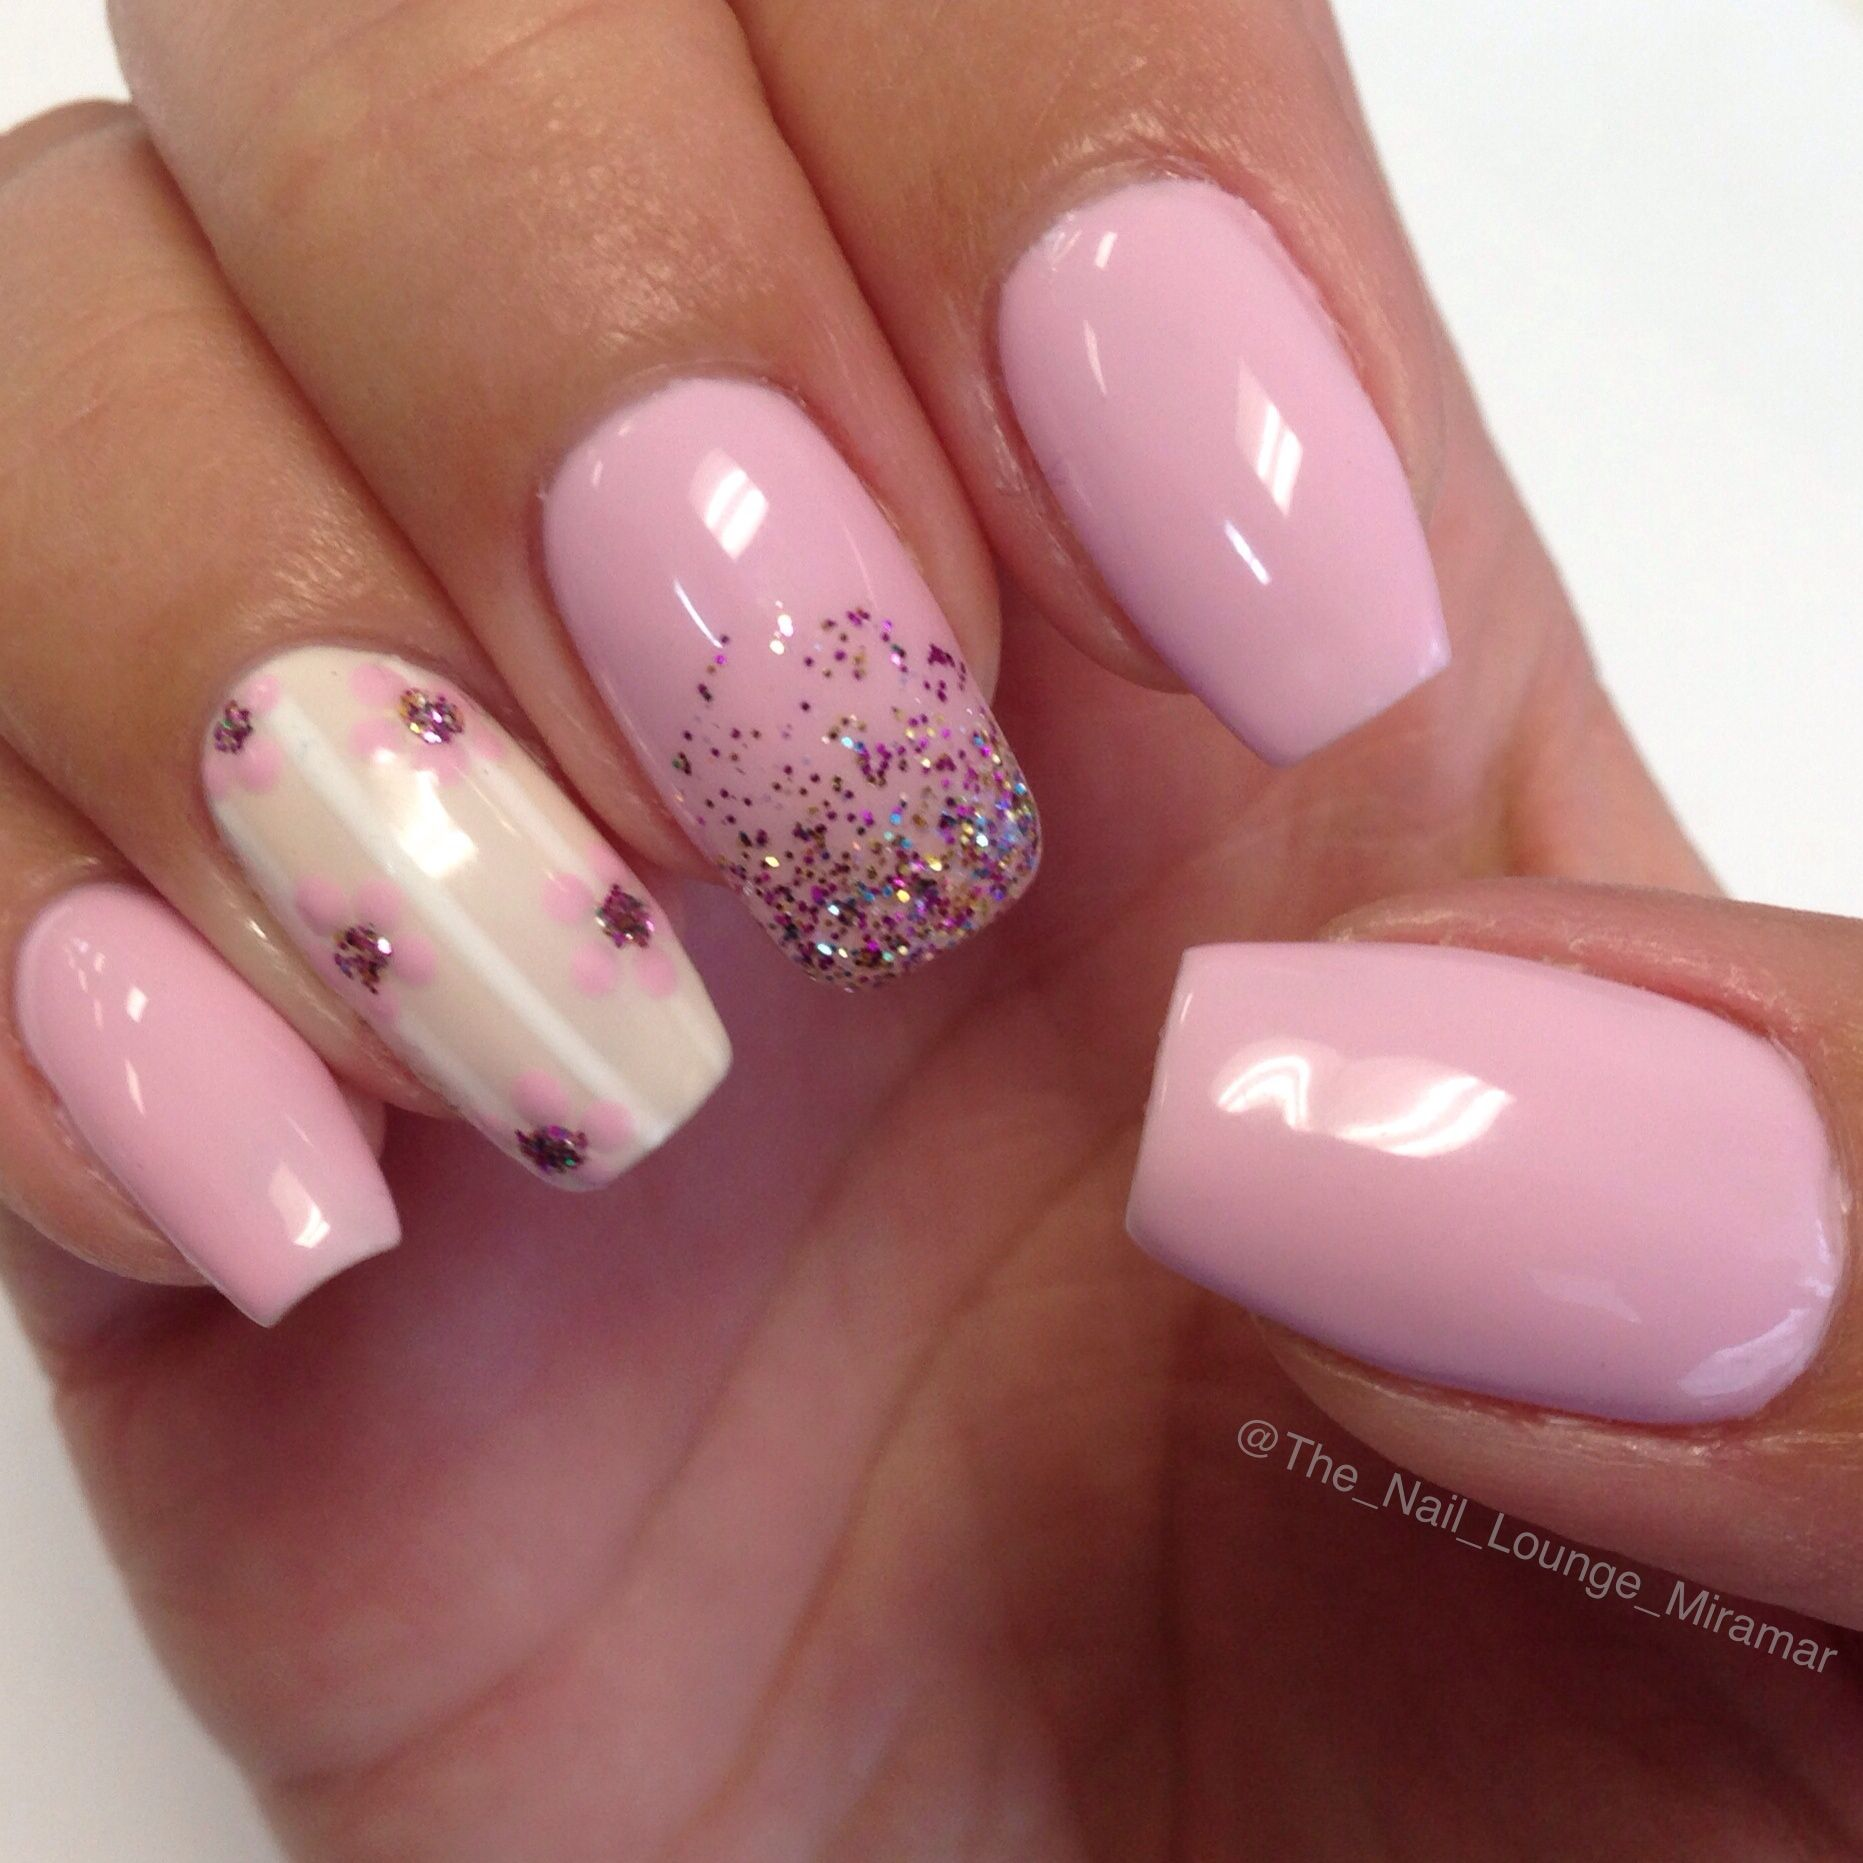 Flower gel nail art design | Nail Art | Pinterest | Gel nail art ...